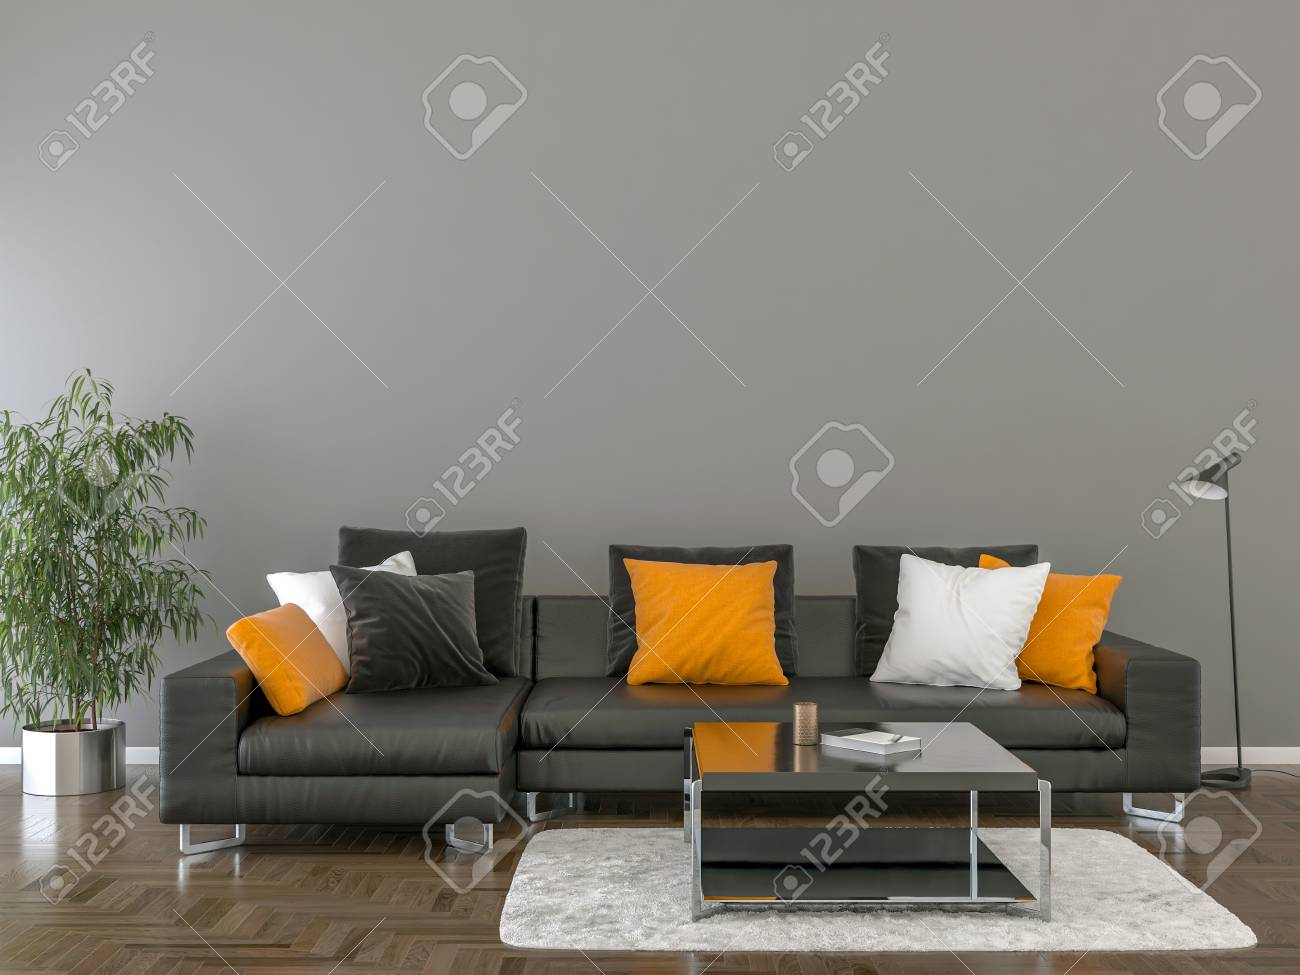 Picture of: Living Room Interior With Black Sofa Pillows And Coffee Table Stock Photo Picture And Royalty Free Image Image 102750823